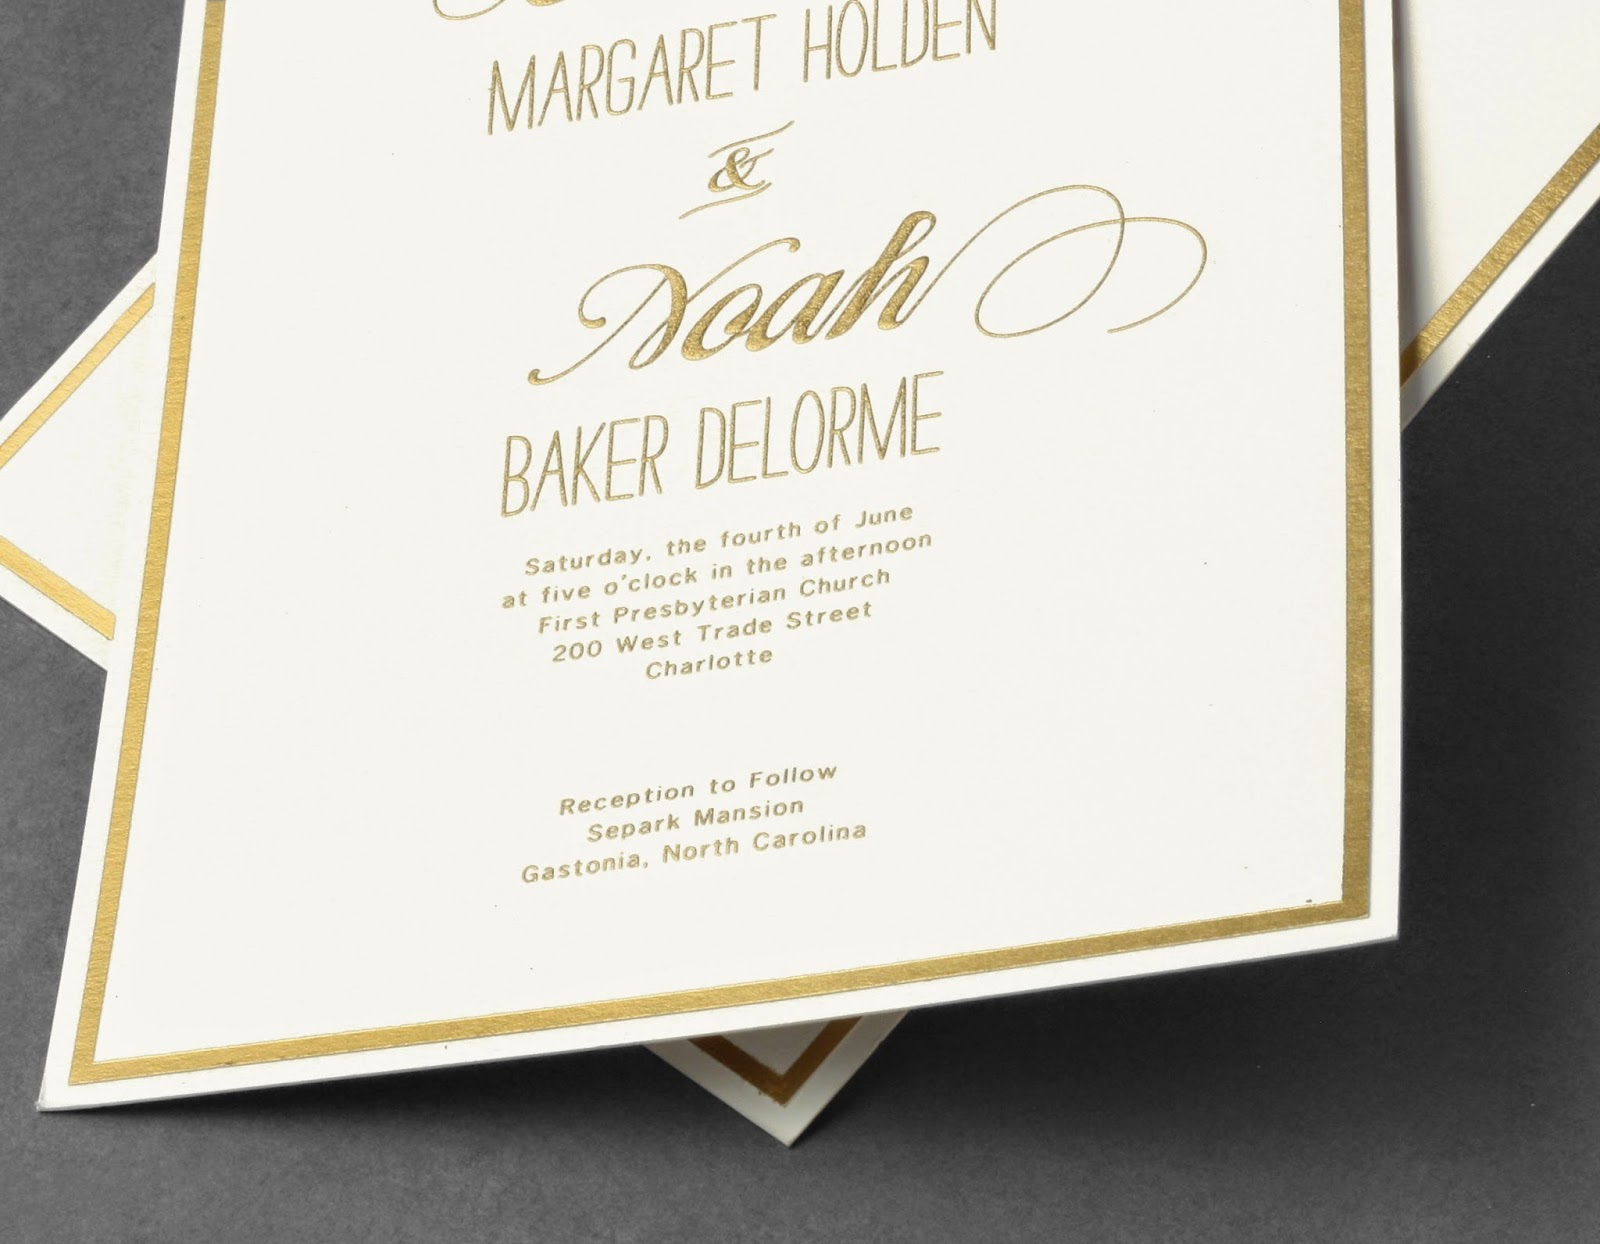 Oversized Is So On Trend Right Now, And We Thought The Wedding Invitation  Should Be No Exception. So Youu0027ll See Plenty Of Extra Large Card Sizes And  ...